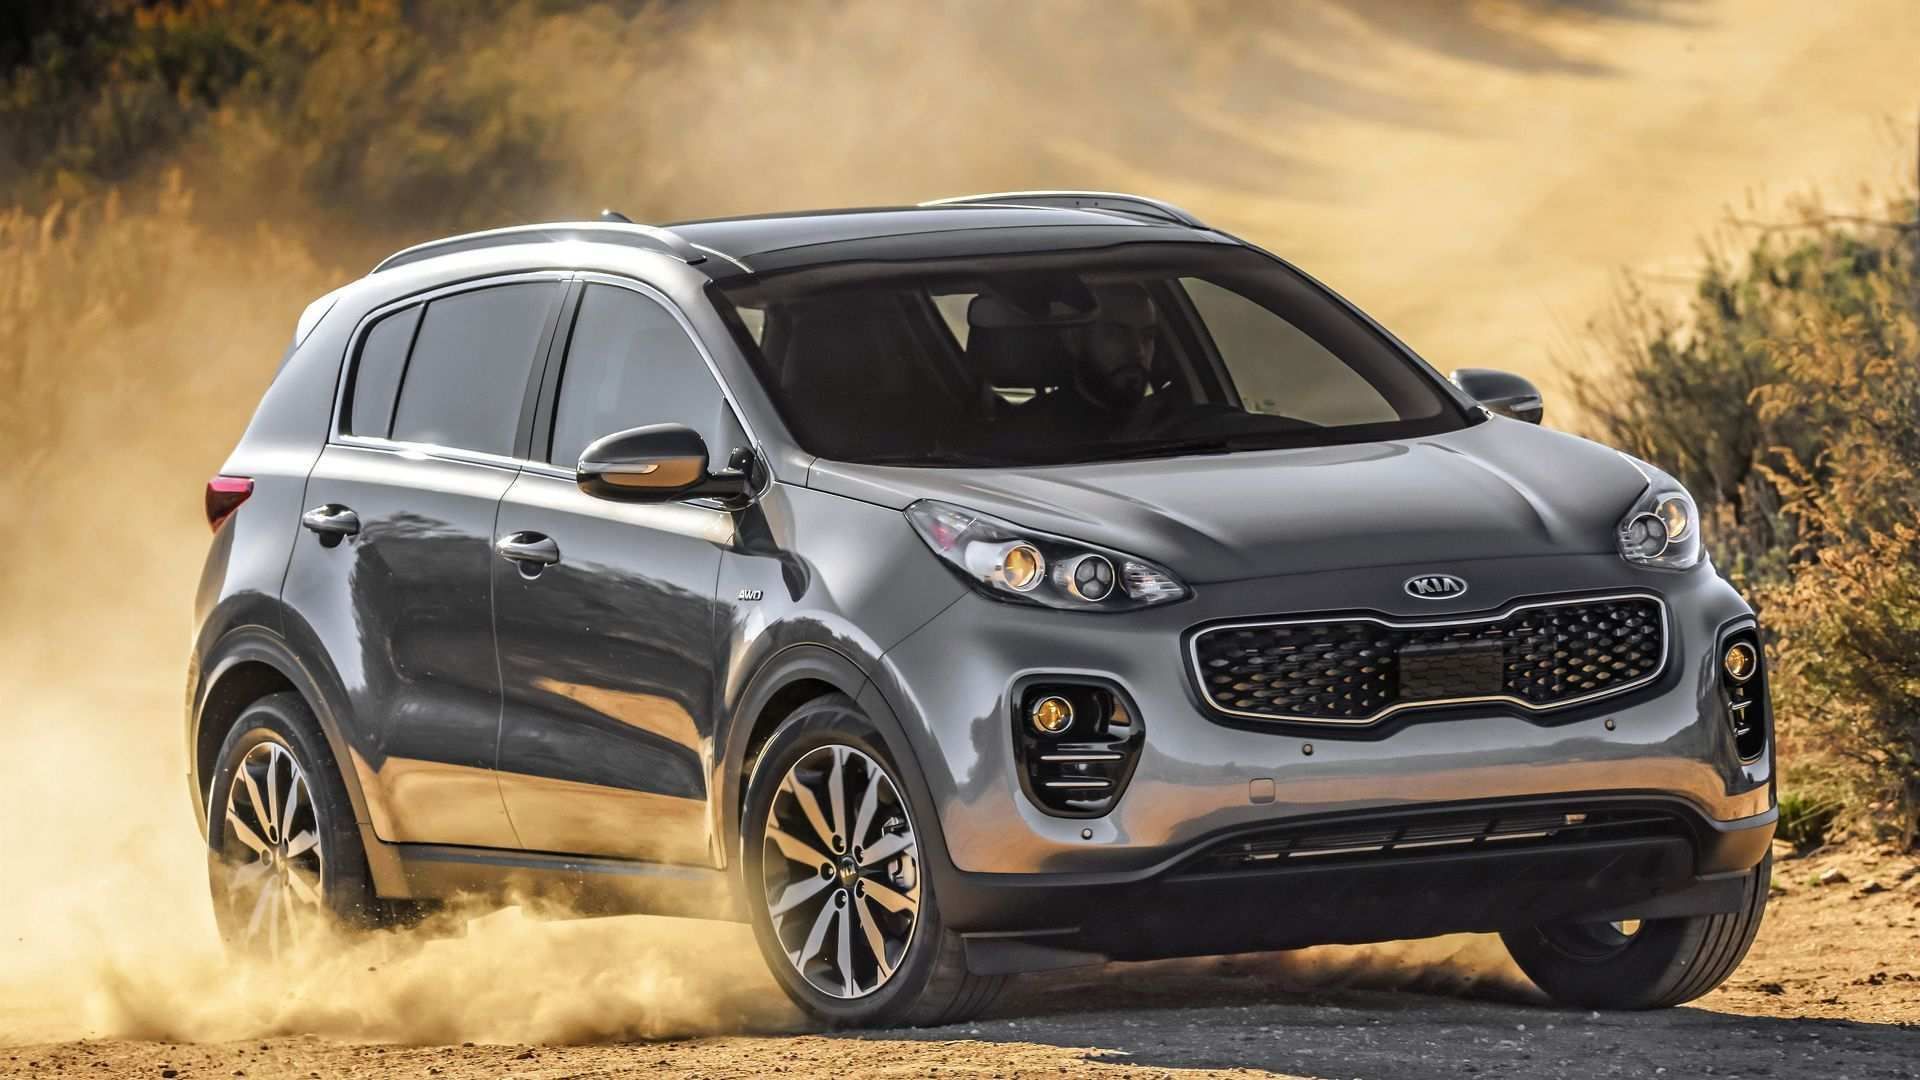 58 Gallery of New Kia Sorento 2019 Uk Specs Picture by New Kia Sorento 2019 Uk Specs